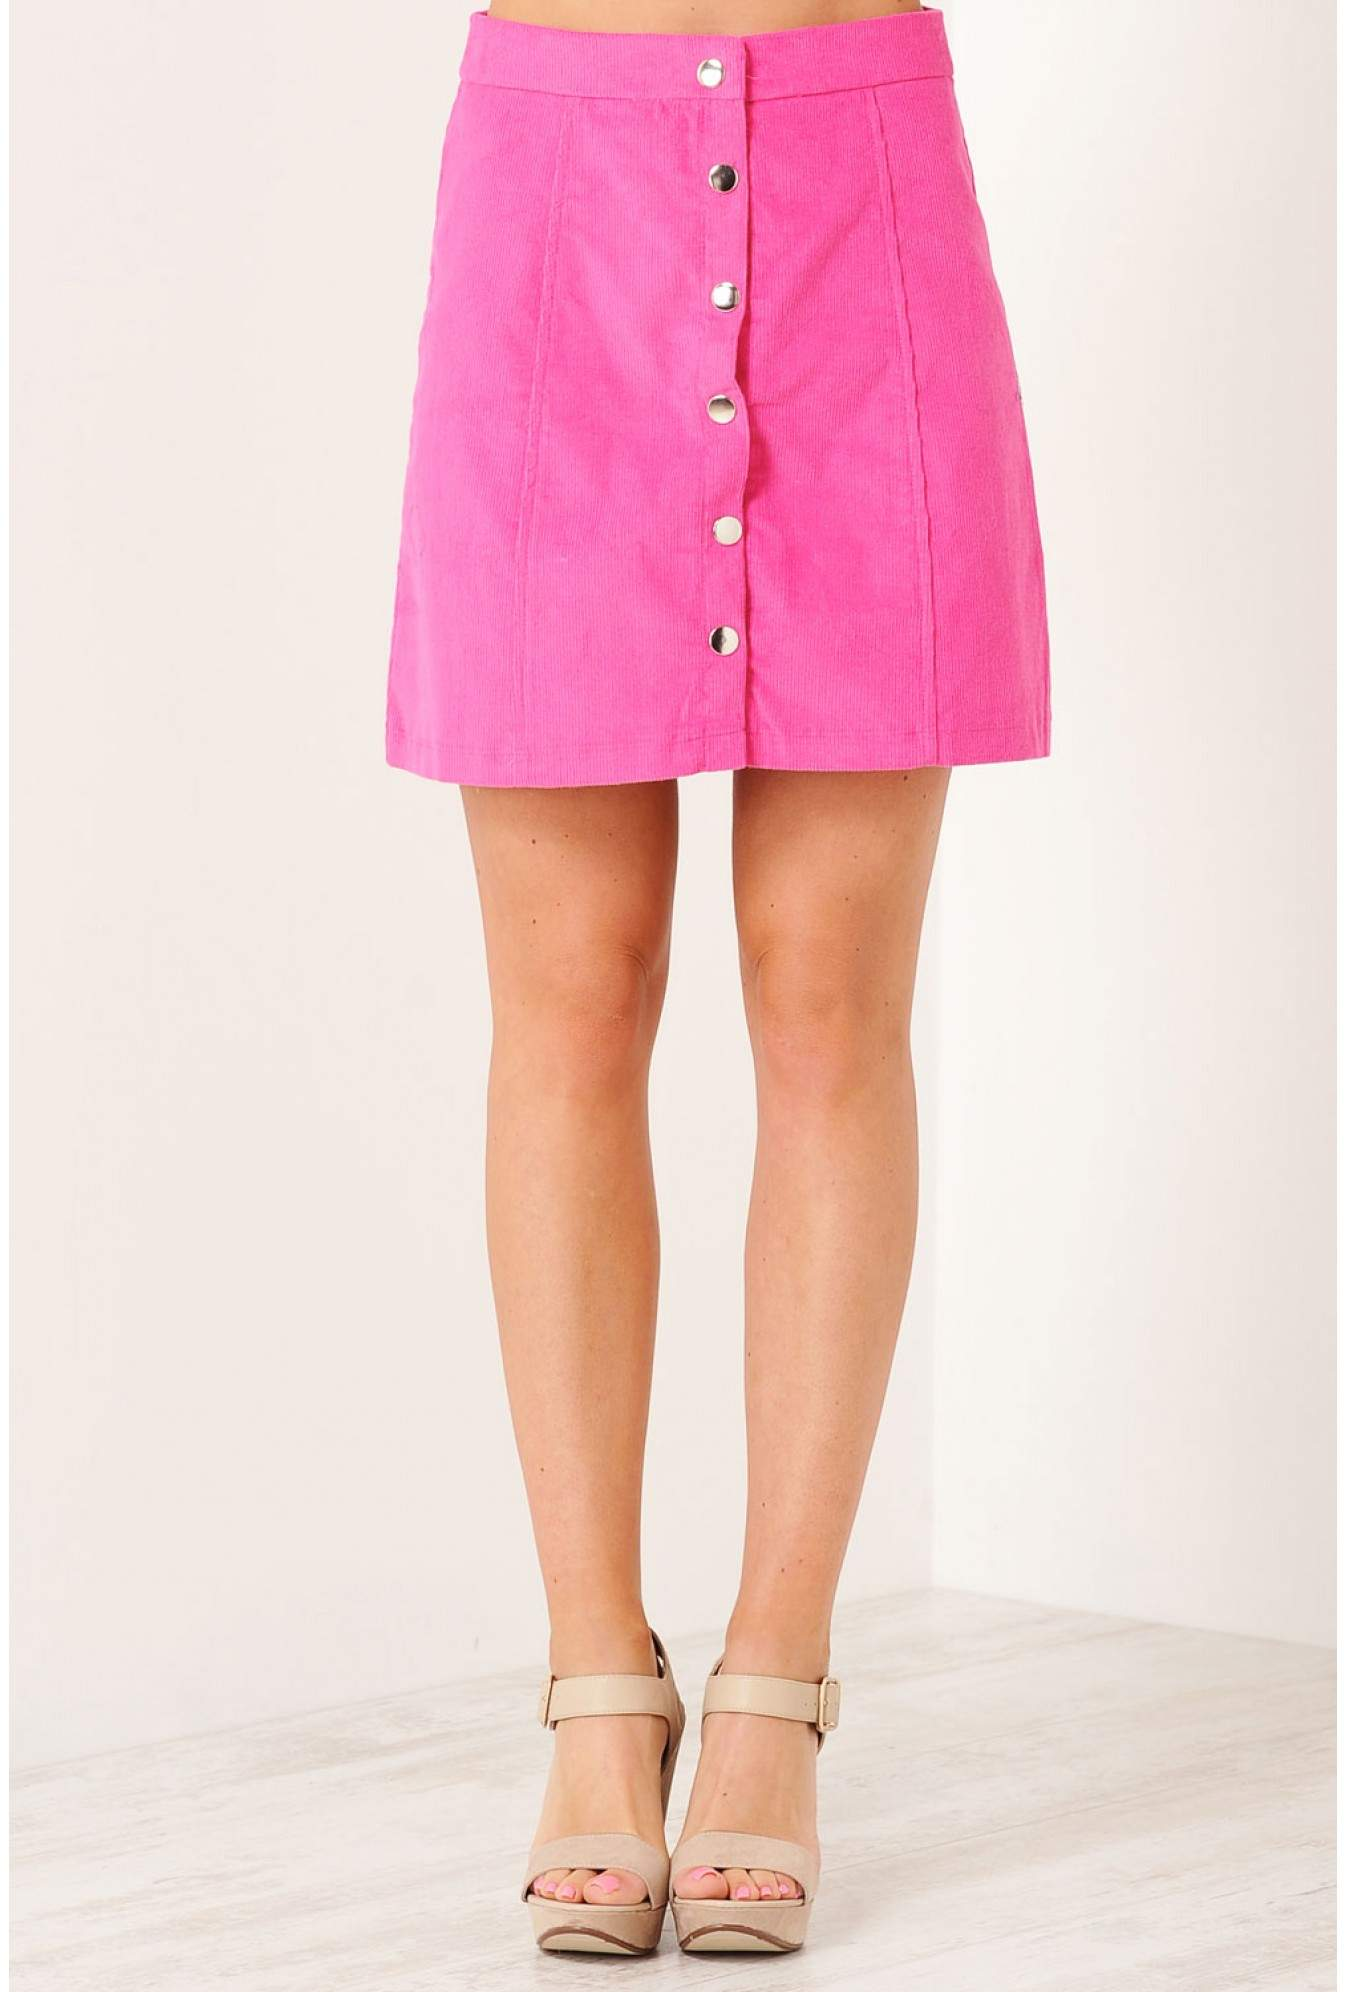 44d68492ab iCLOTHING Avril Button Front Mini Skirt in Pink | iCLOTHING